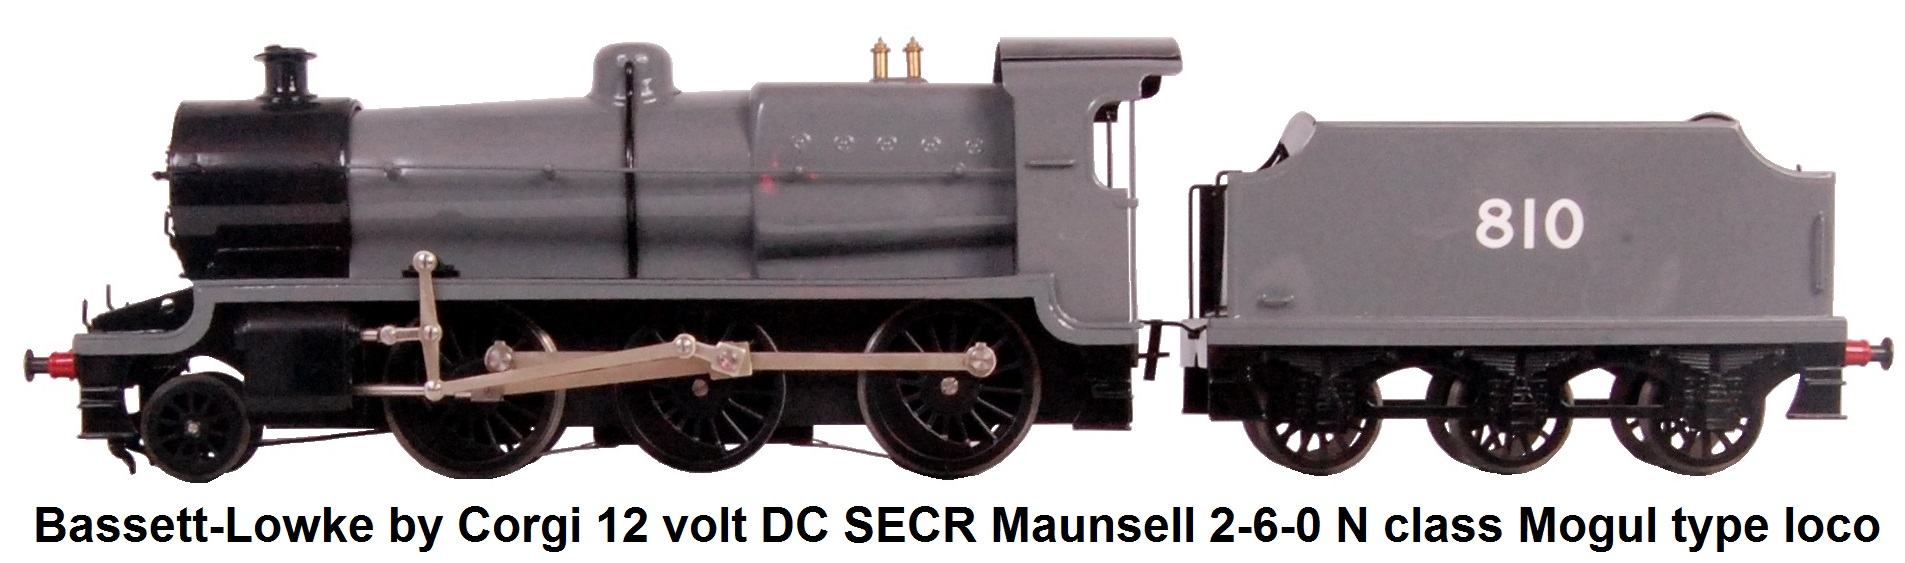 Bassett-Lowke by Corgi 'O' gauge 12 volt DC SECR Maunsell 2-6-0 N class Mogul type locomotive and tender, finished in Austerity grey with #810 to tender sides, in the original black box, limited edition